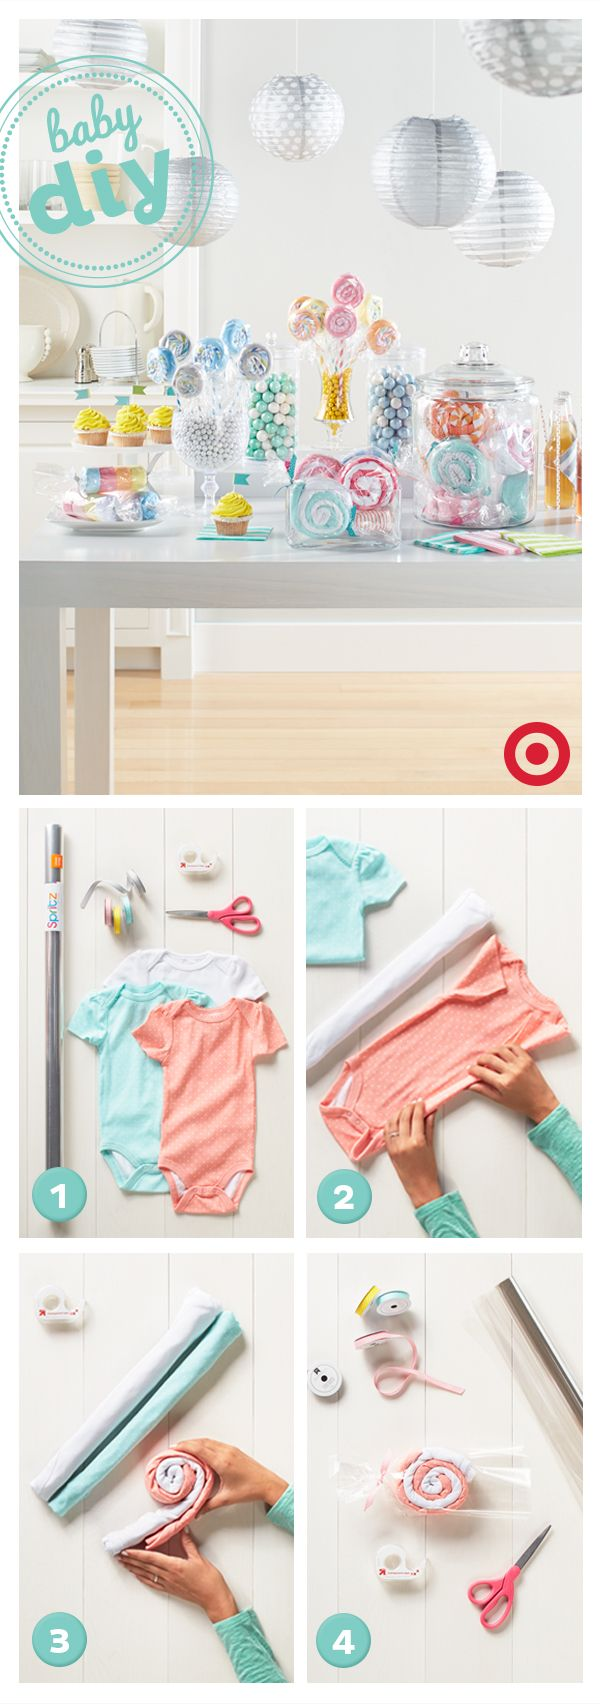 """Here's a sweet DIY idea for the next baby shower you throw. Turn newborn bodysuits into """"candies"""" in a few simple steps. Find everything you'll need, wrapping paper, cellophane, ribbons and more, at Target.com."""